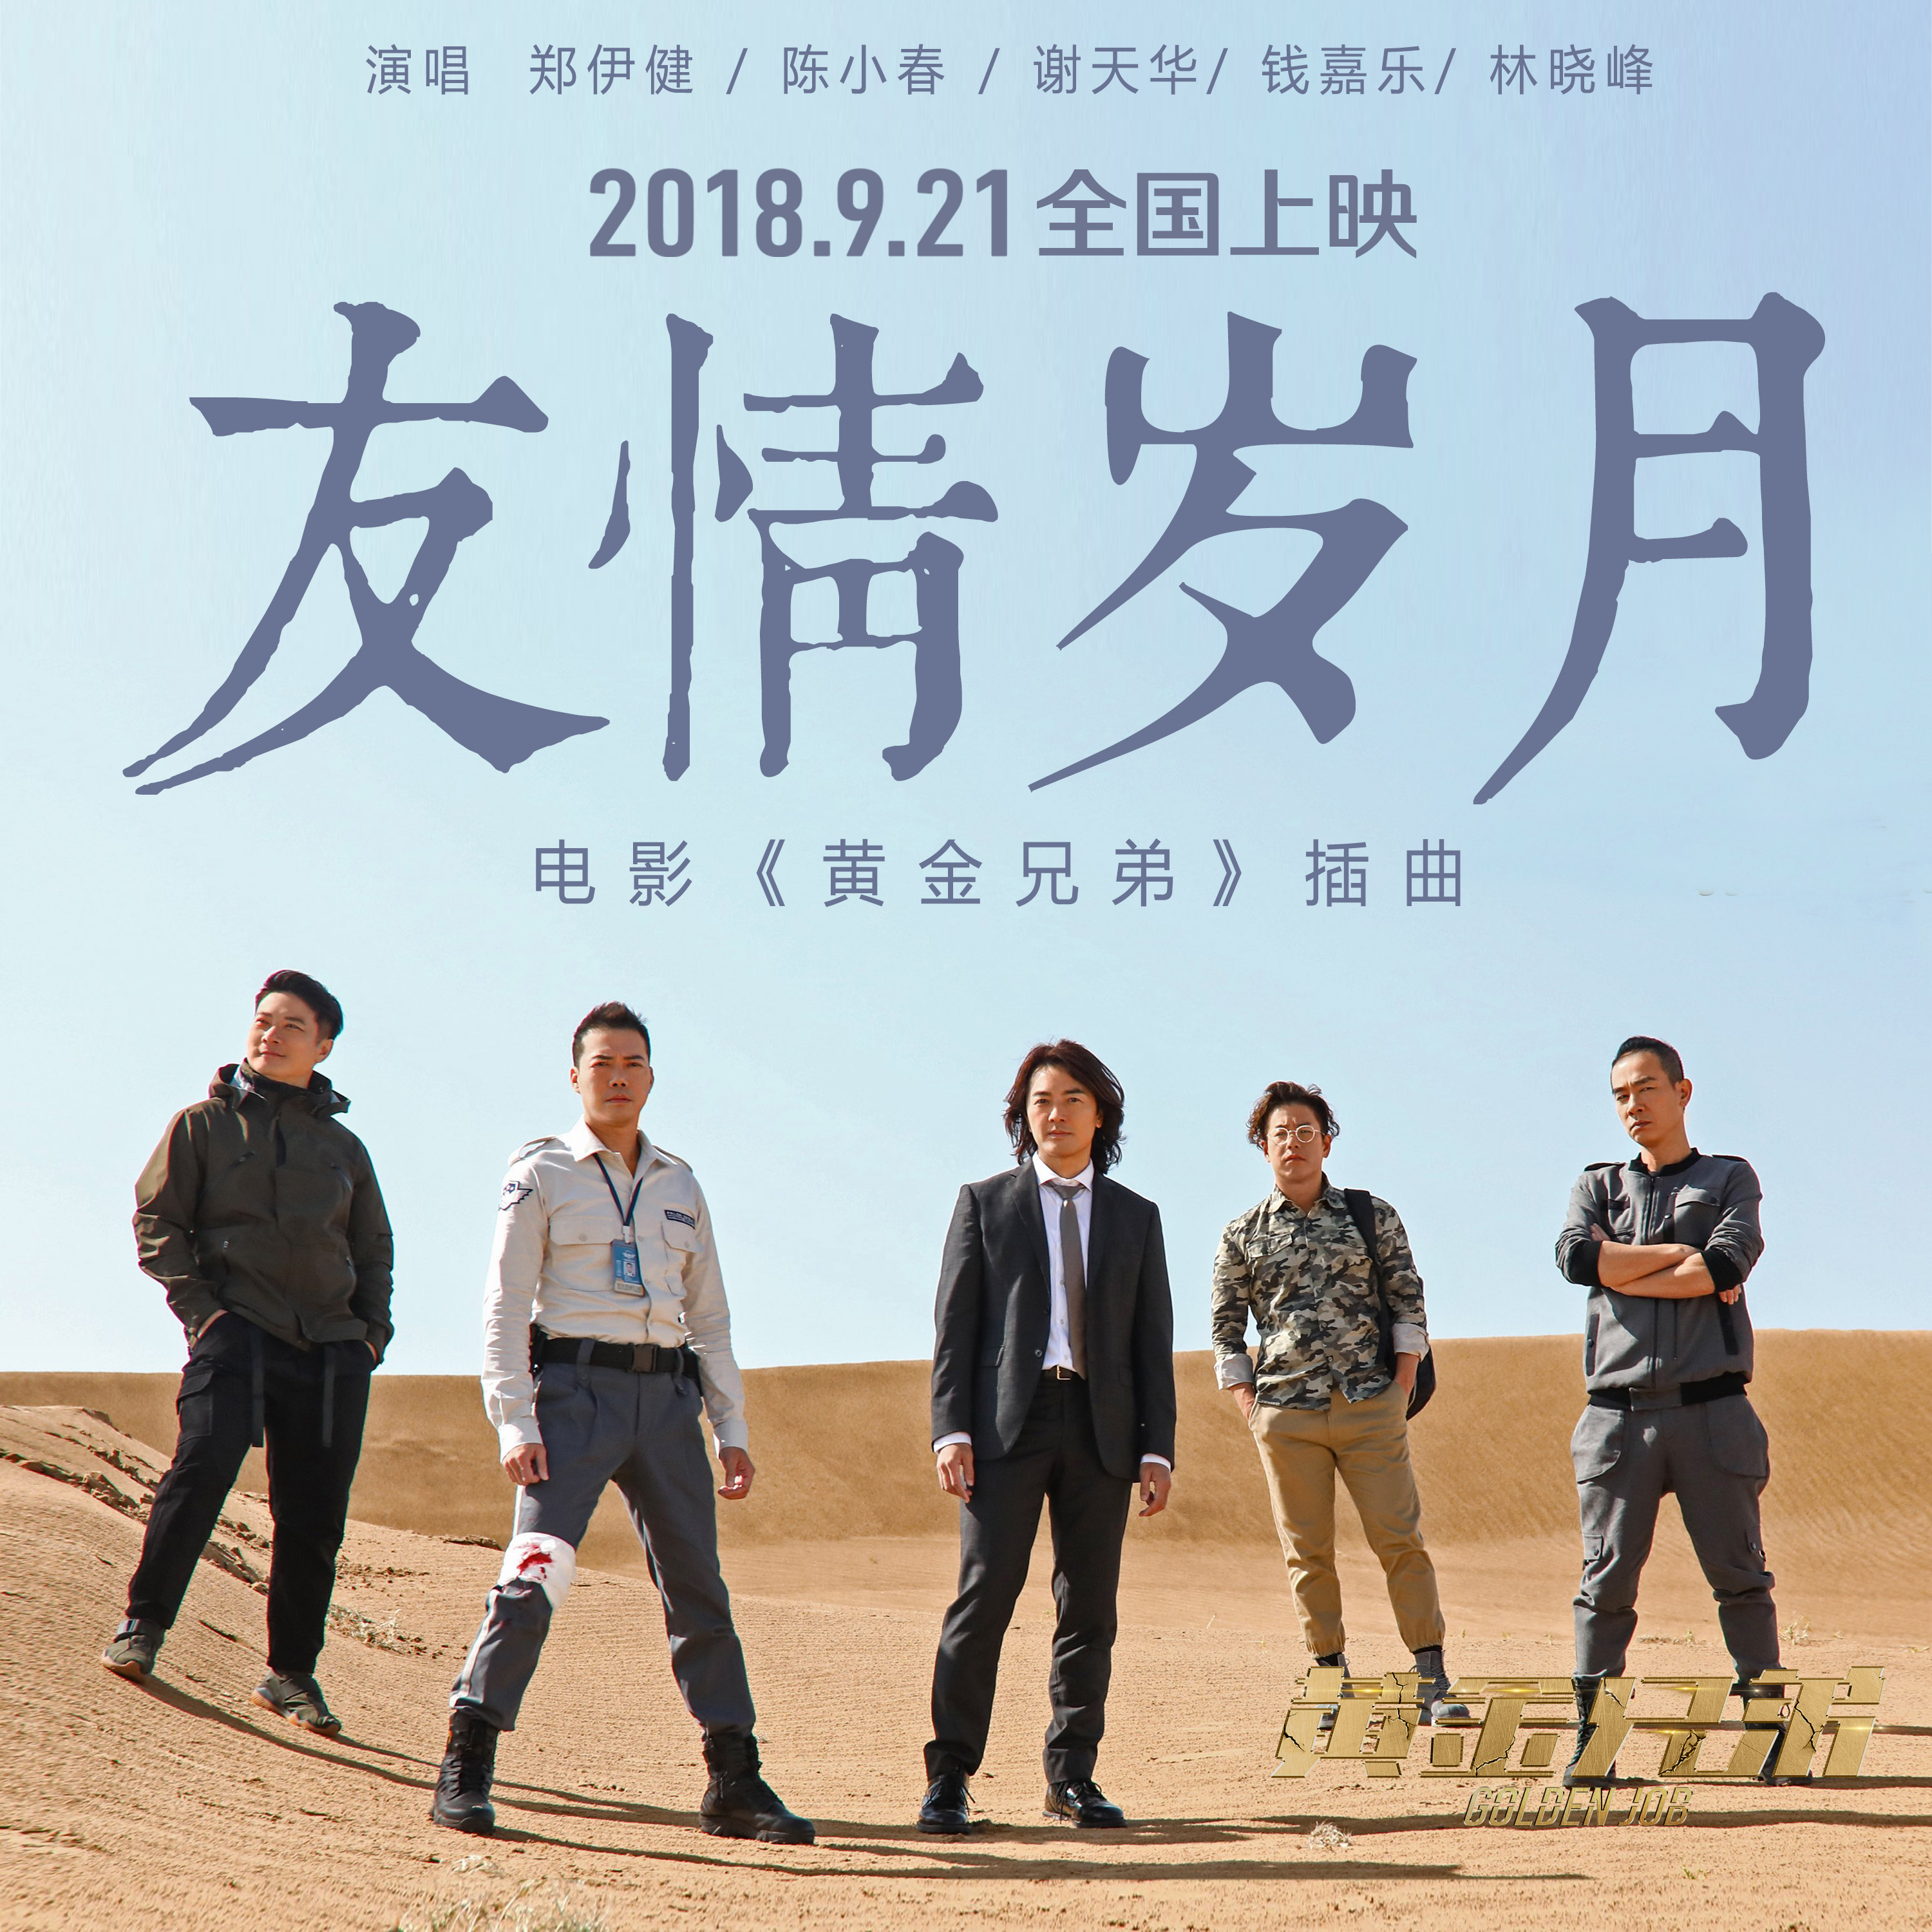 Golden job' ekin cheng jordan chan wuhu sings the new version of friendship years rekindled the innocent and passionate love of youth